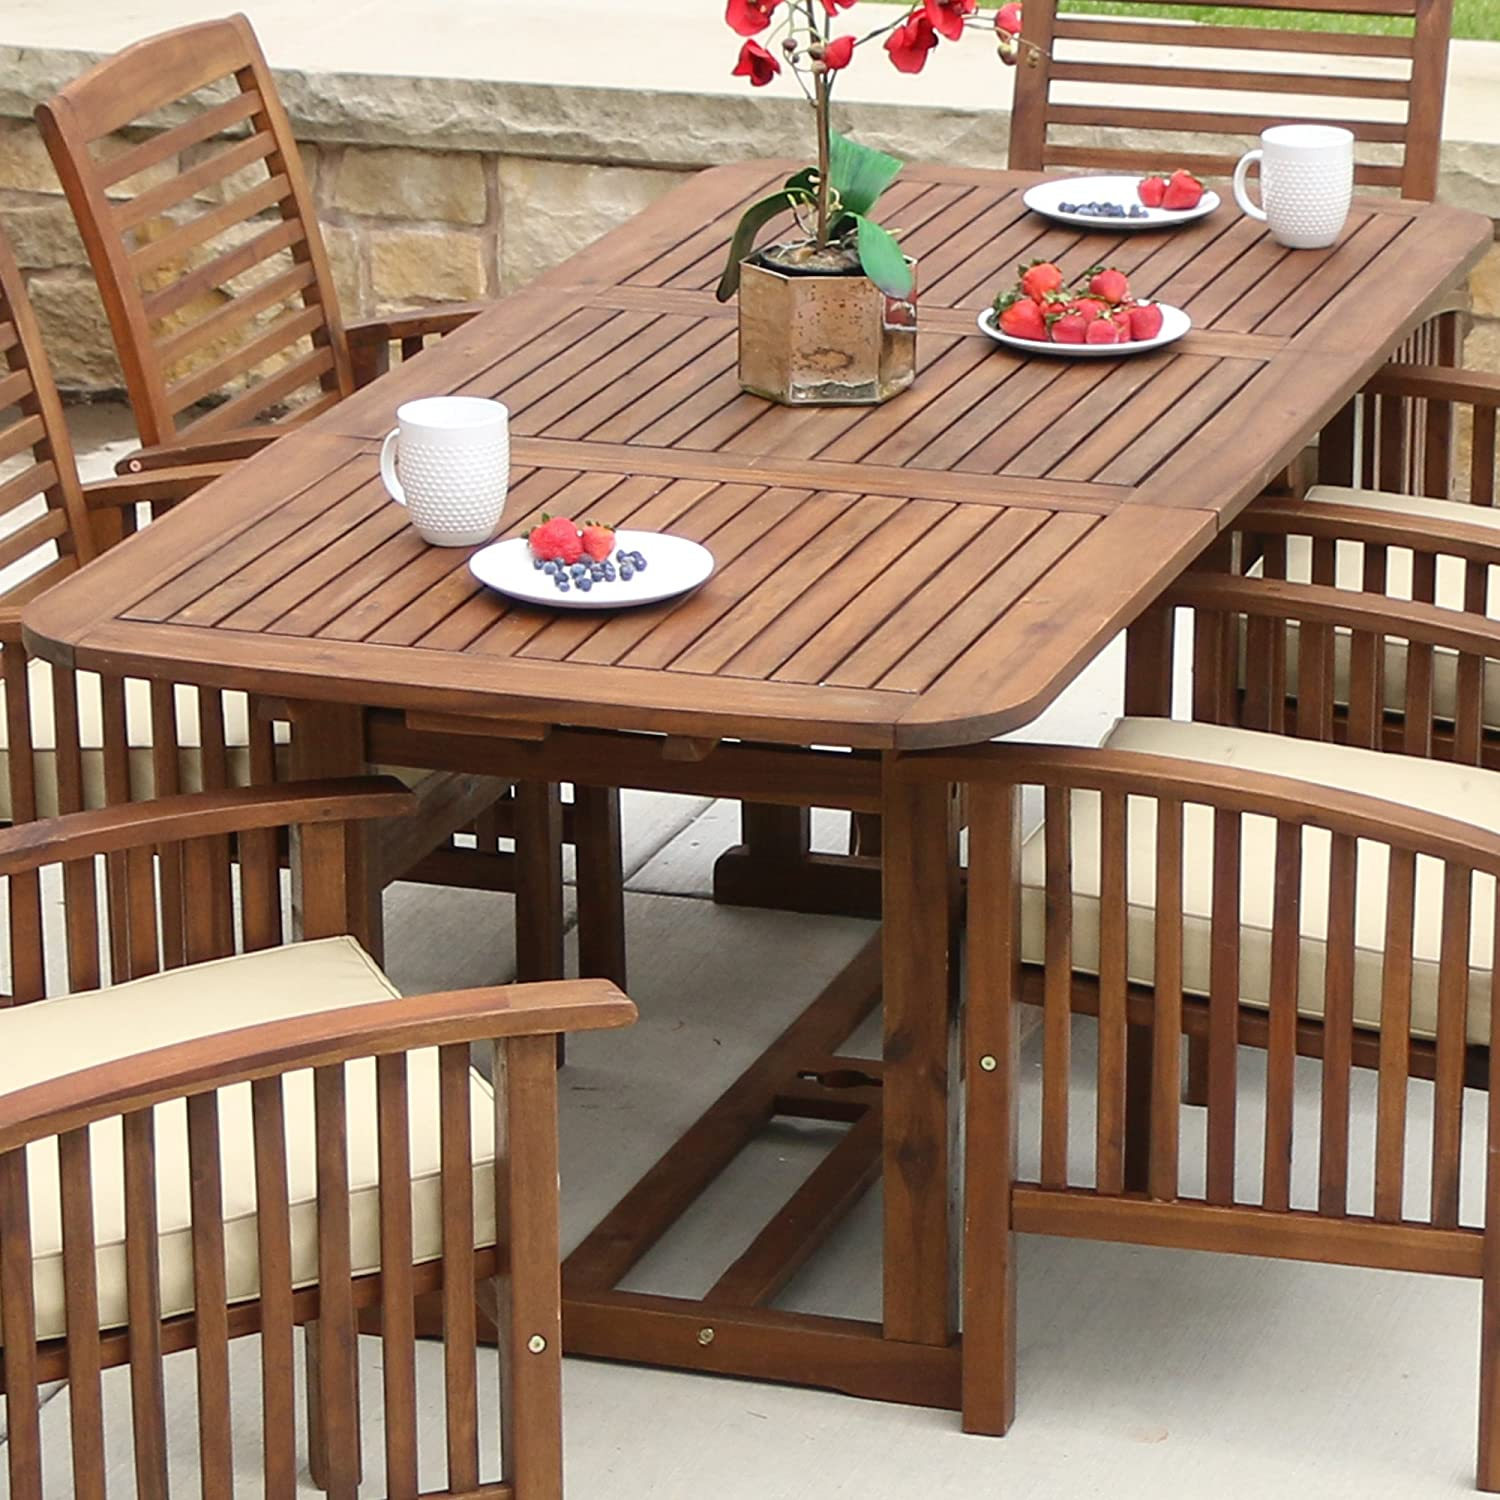 Amazon com   WE Furniture Solid Acacia Wood Patio Extendable Dining Table    Garden   Outdoor. Amazon com   WE Furniture Solid Acacia Wood Patio Extendable